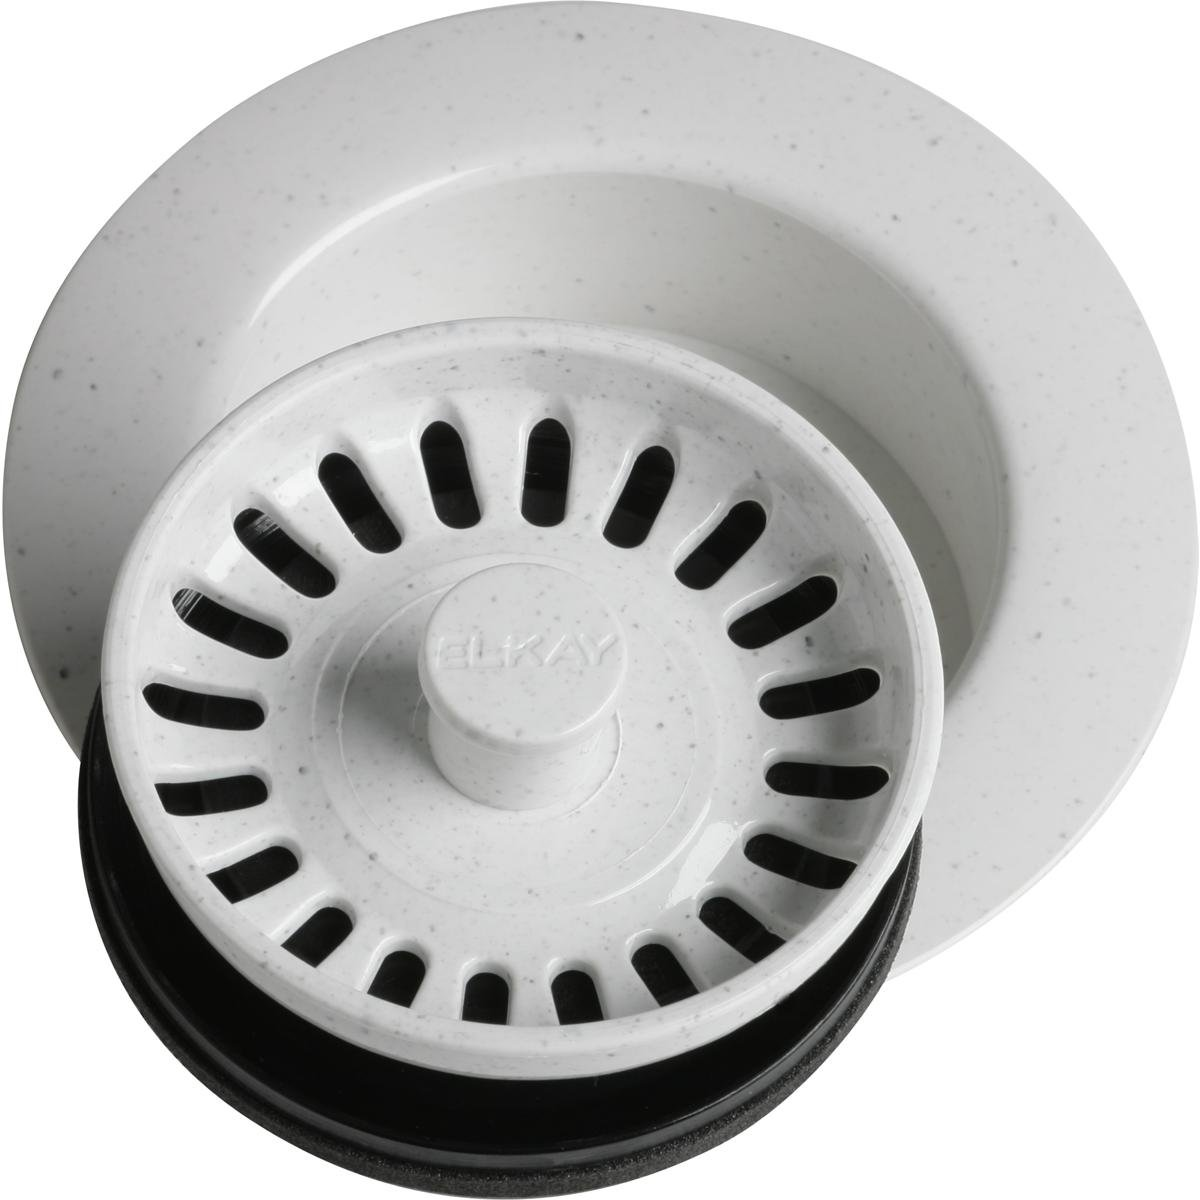 Elkay LKD35WH White Polymer Disposer Flange Fitting with Removable Basket Strainer and Rubber Stopper